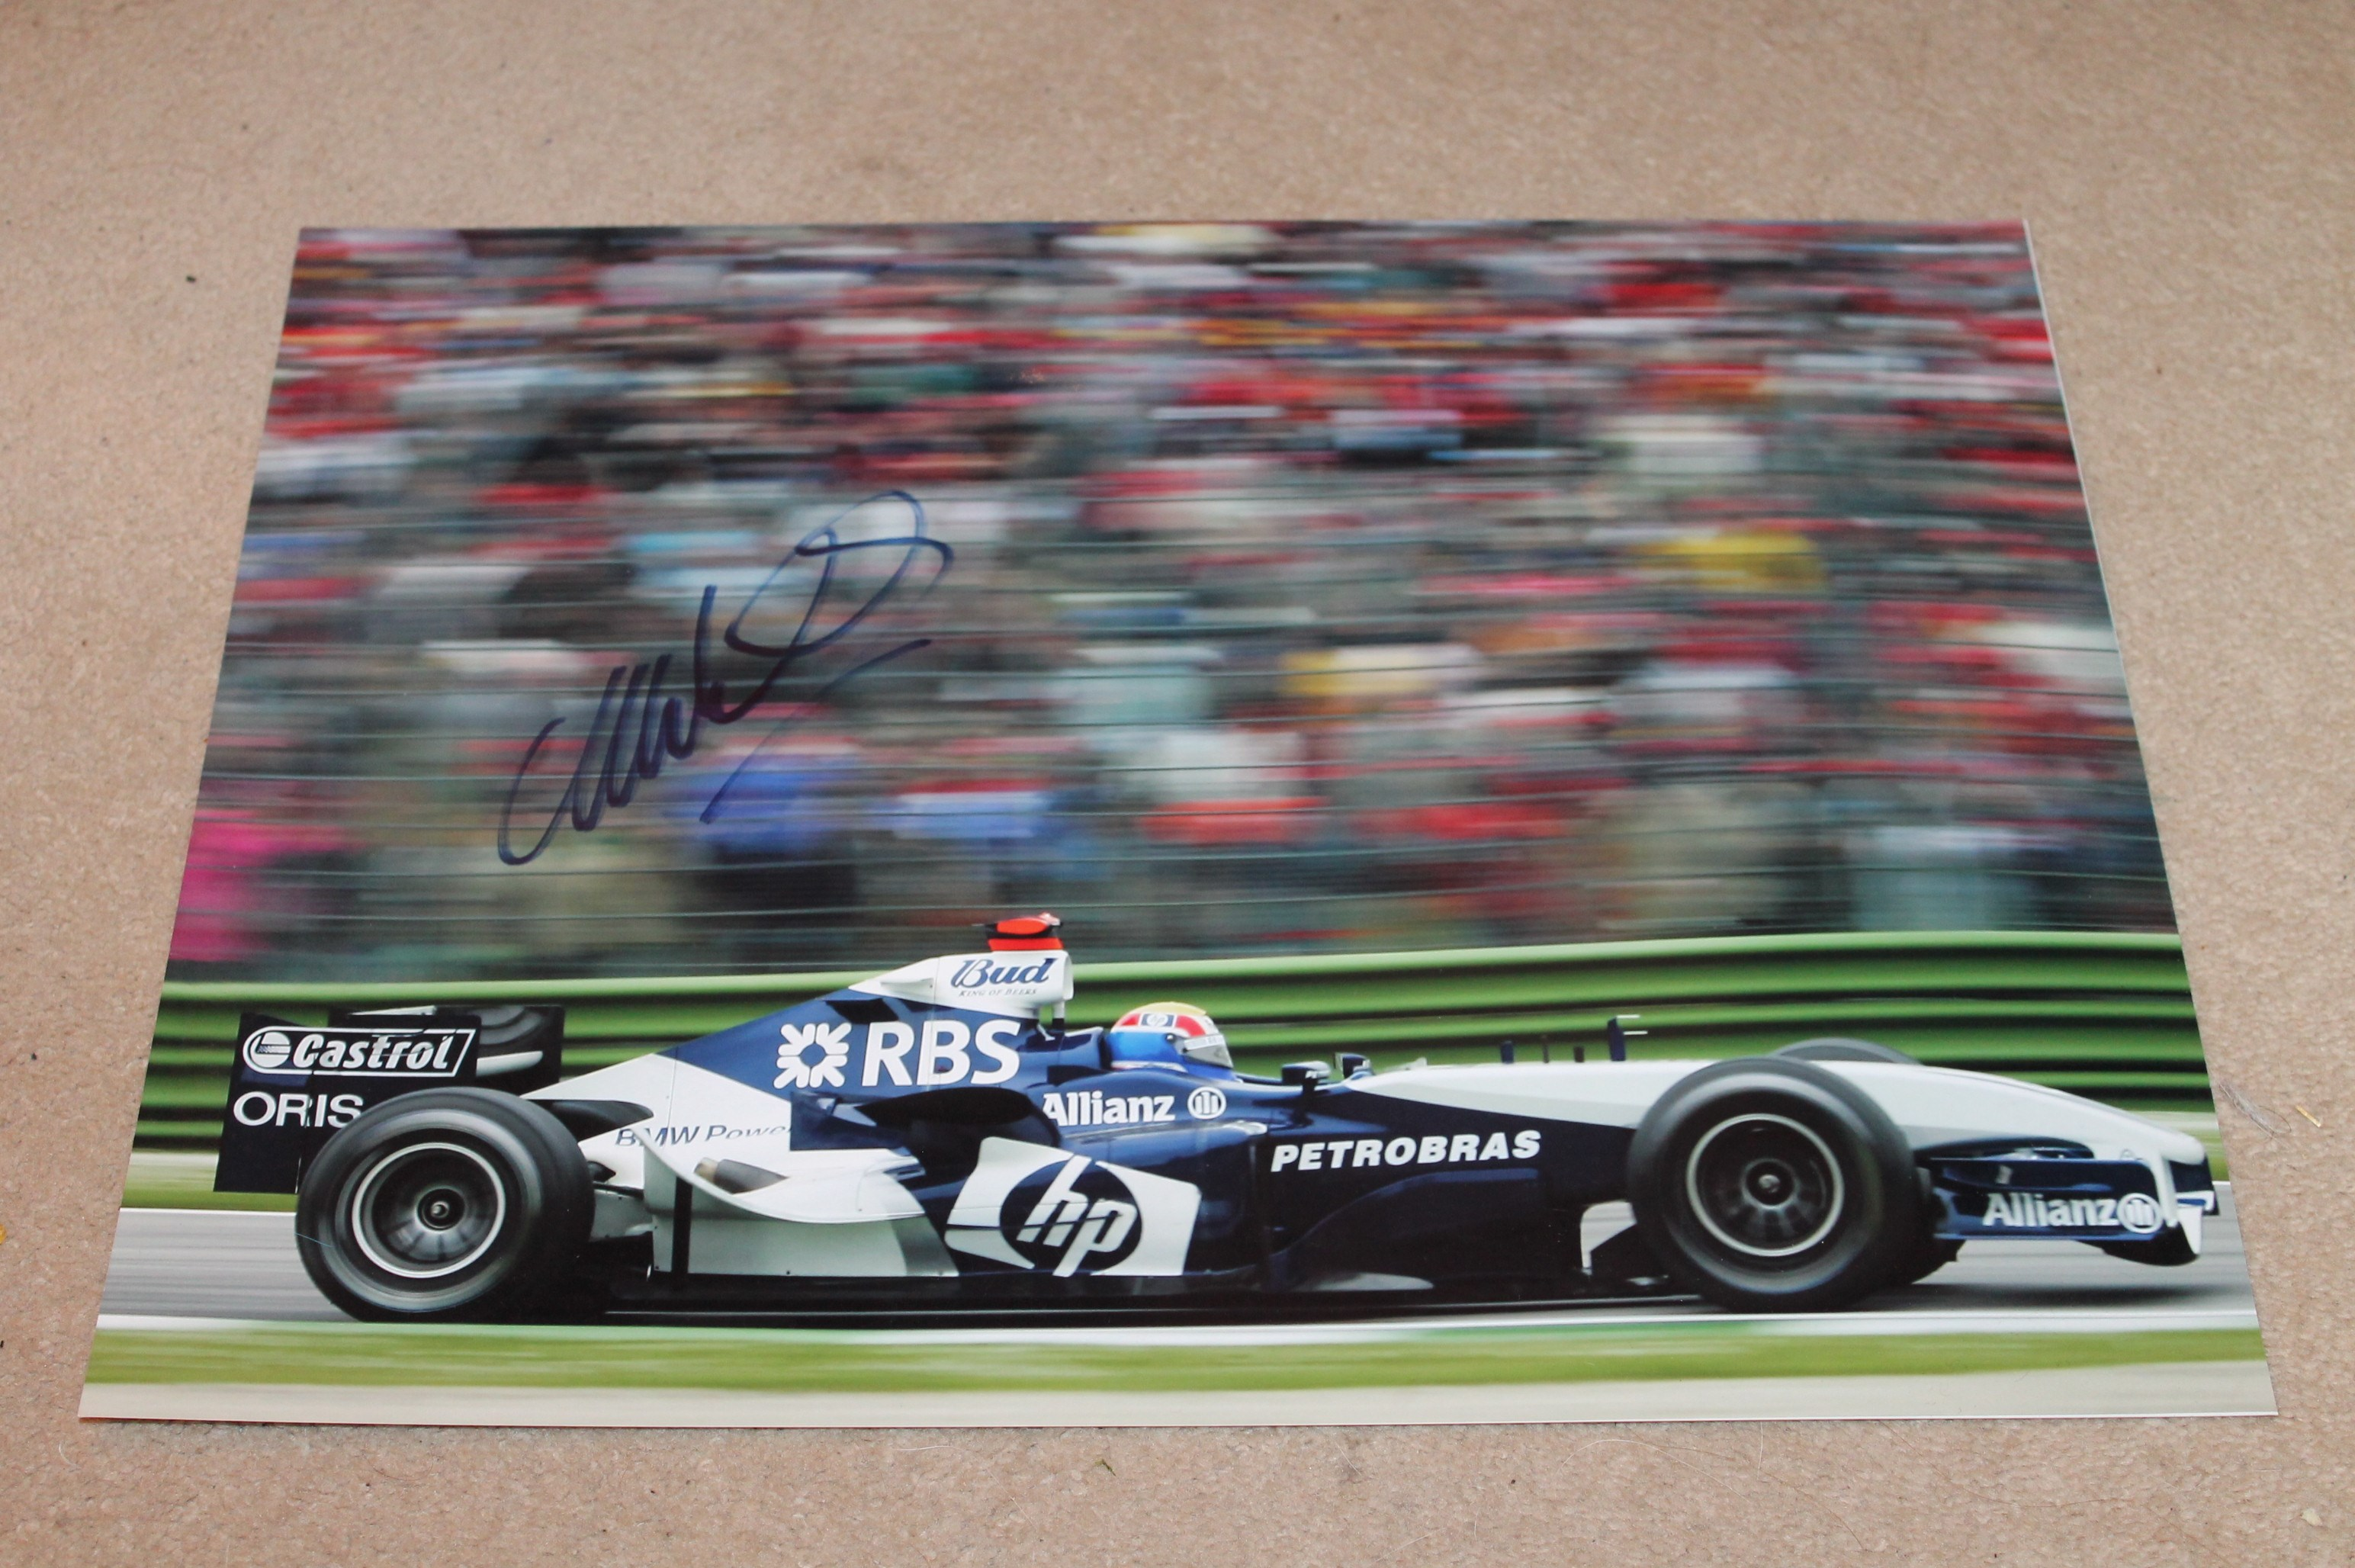 MARK WEBBER SIGNED WILLIAMS PICTURE